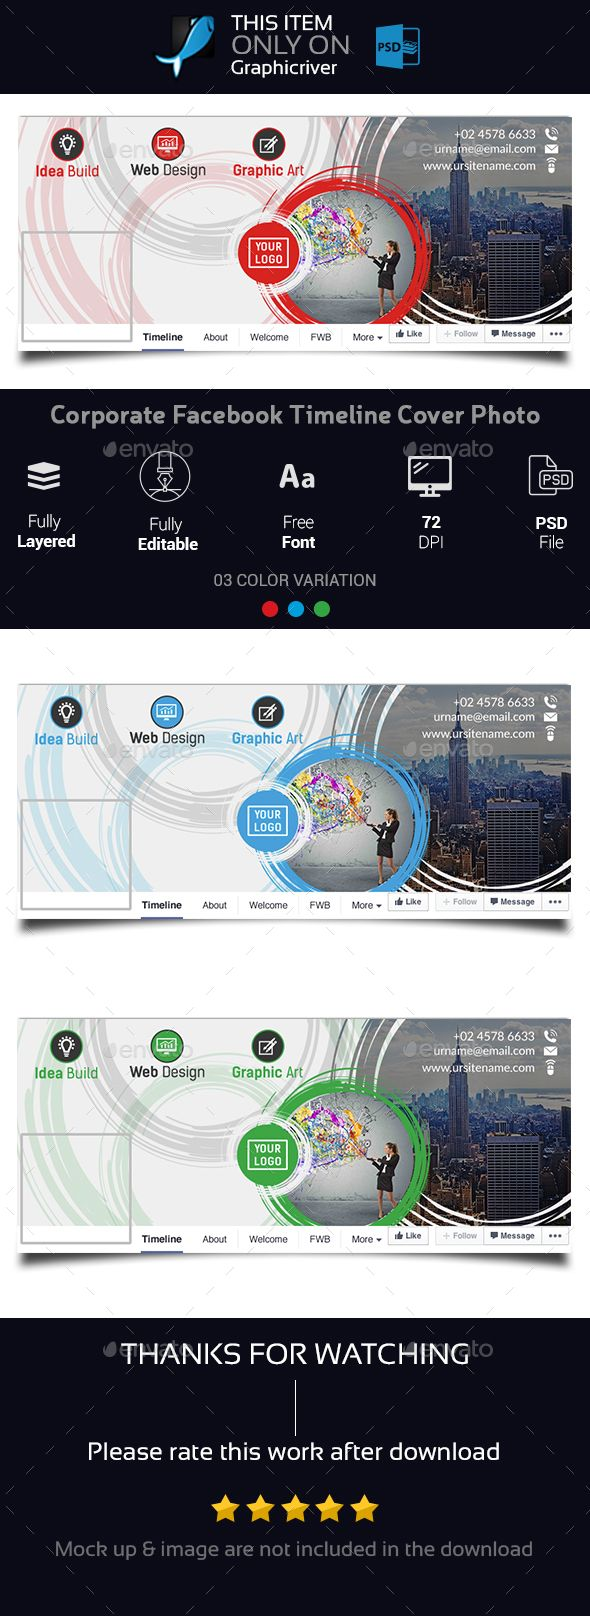 Corporate Facebook Cover Photo Design Template Psd Download Here